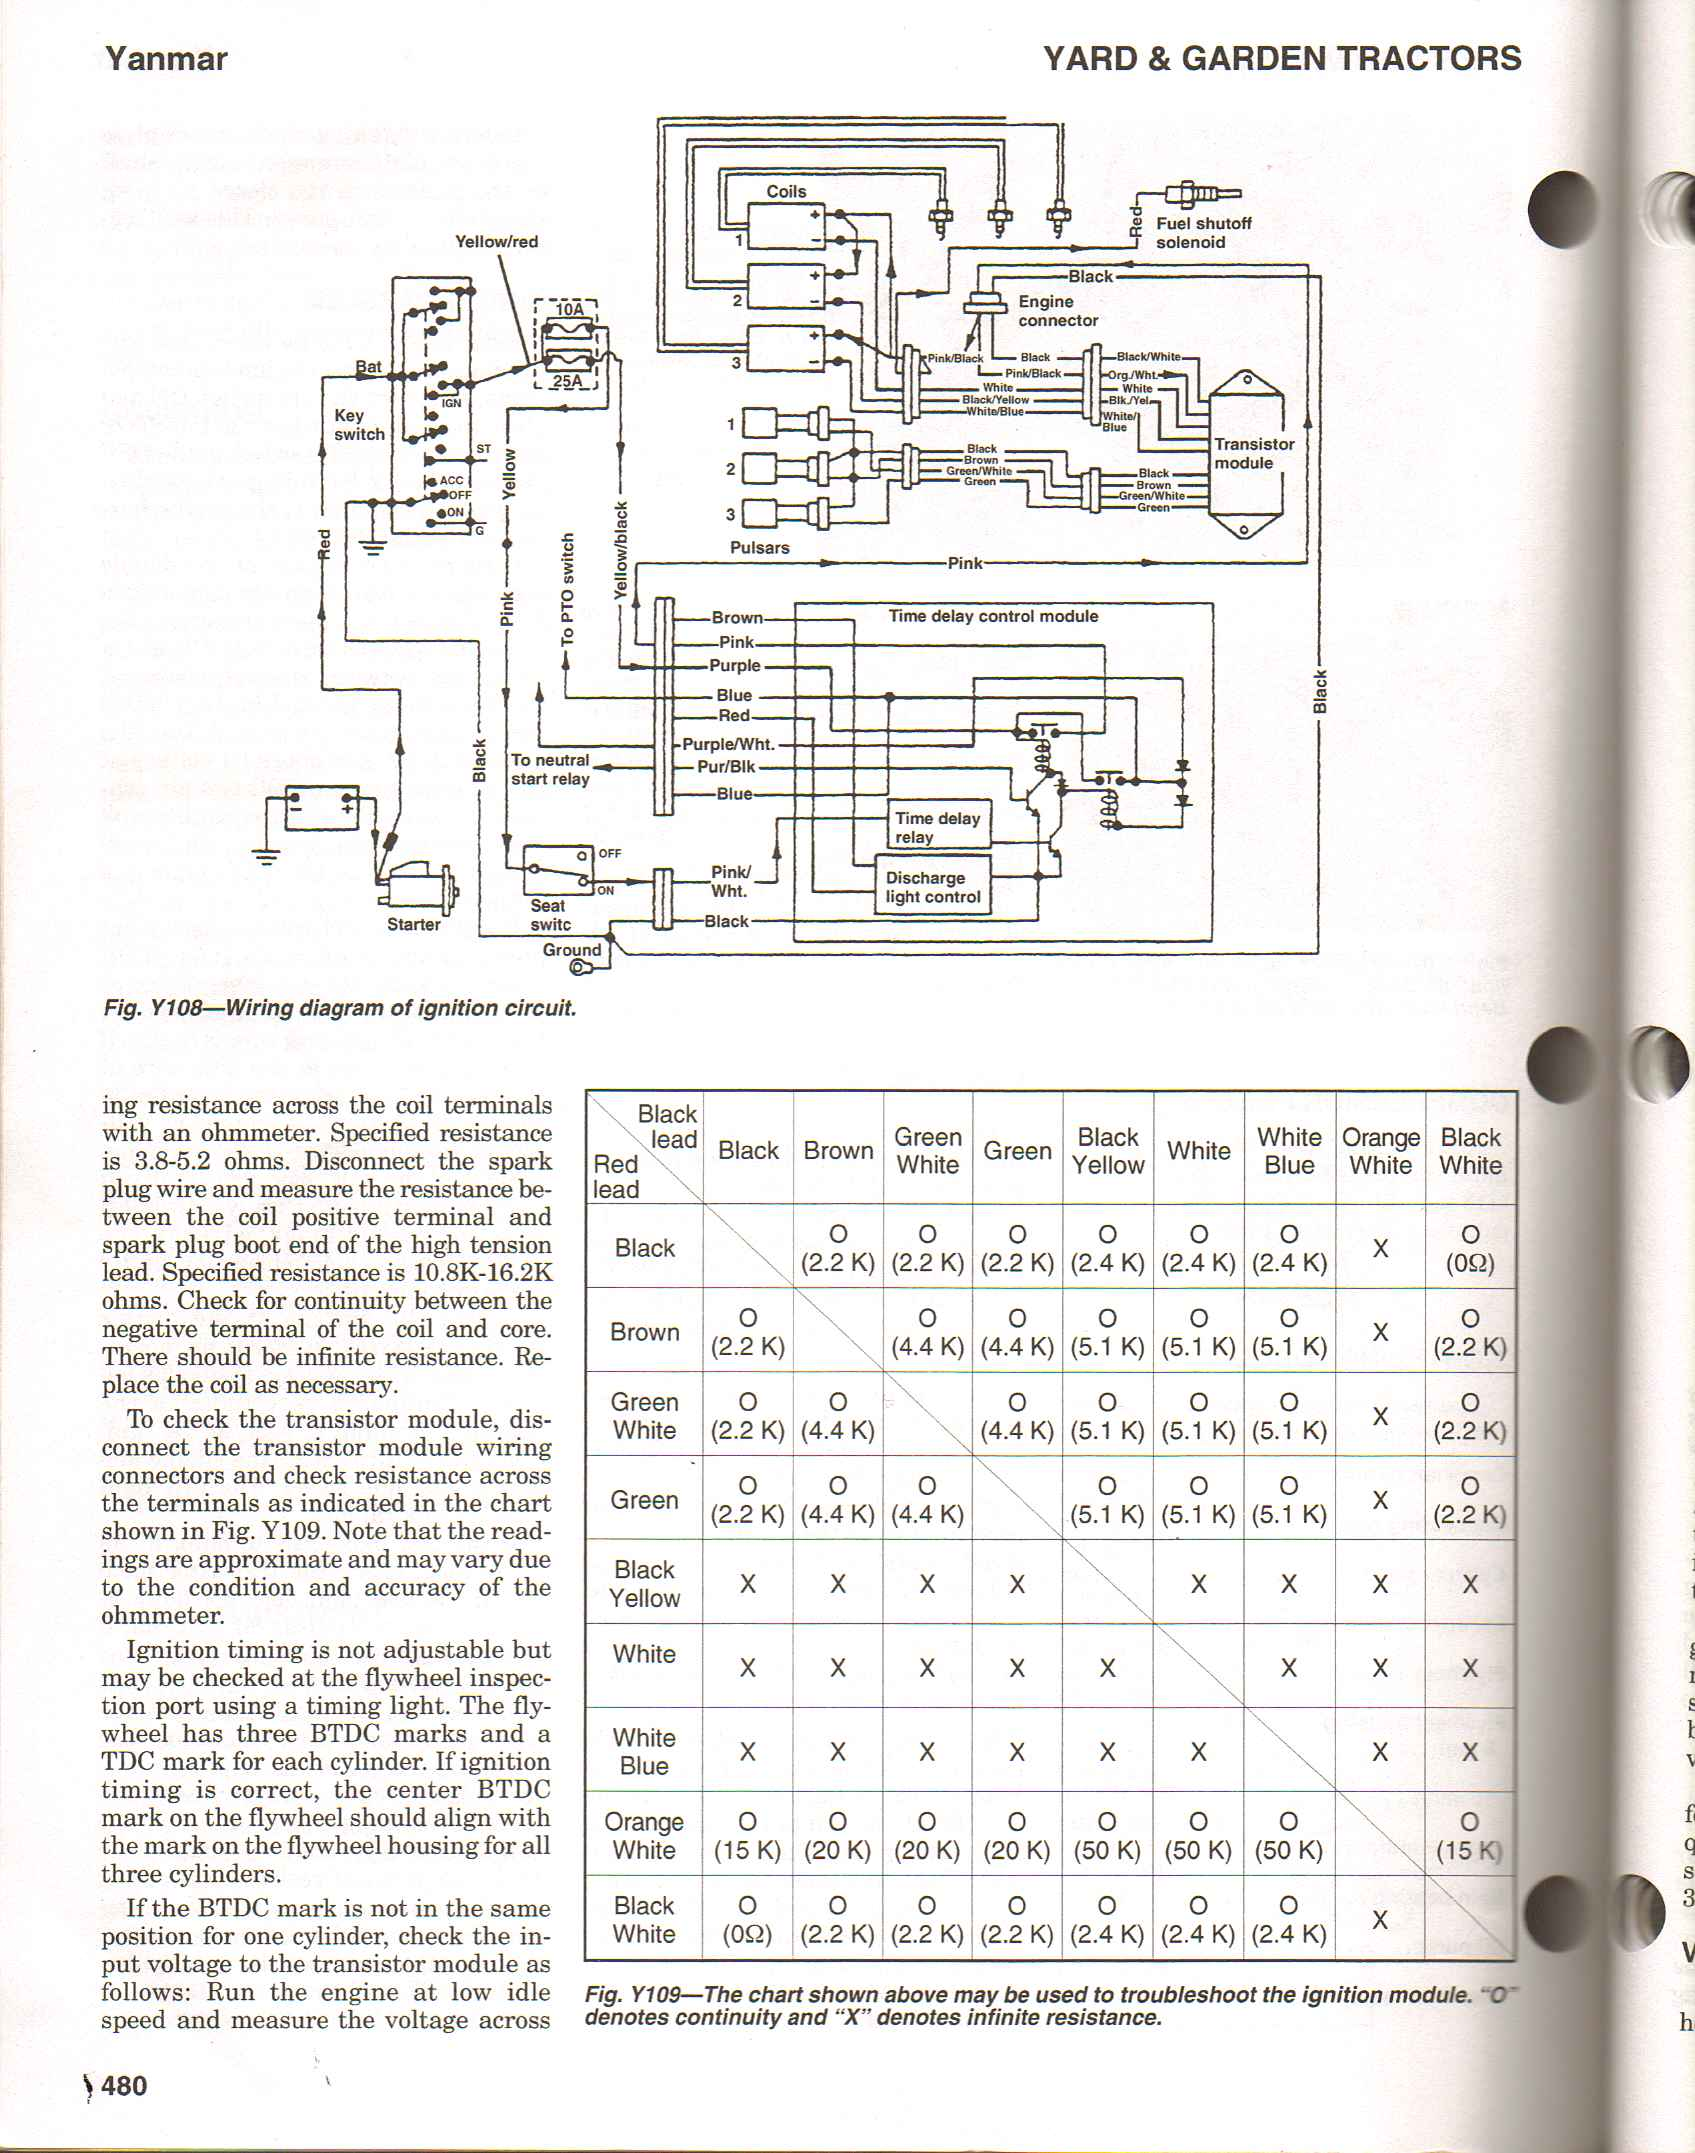 John Deere 322 Lawn Tractor Wiring Diagram Diagrams 110 Ignition I Have A 3 Cylinder Yanmar 20 Hp In And 400